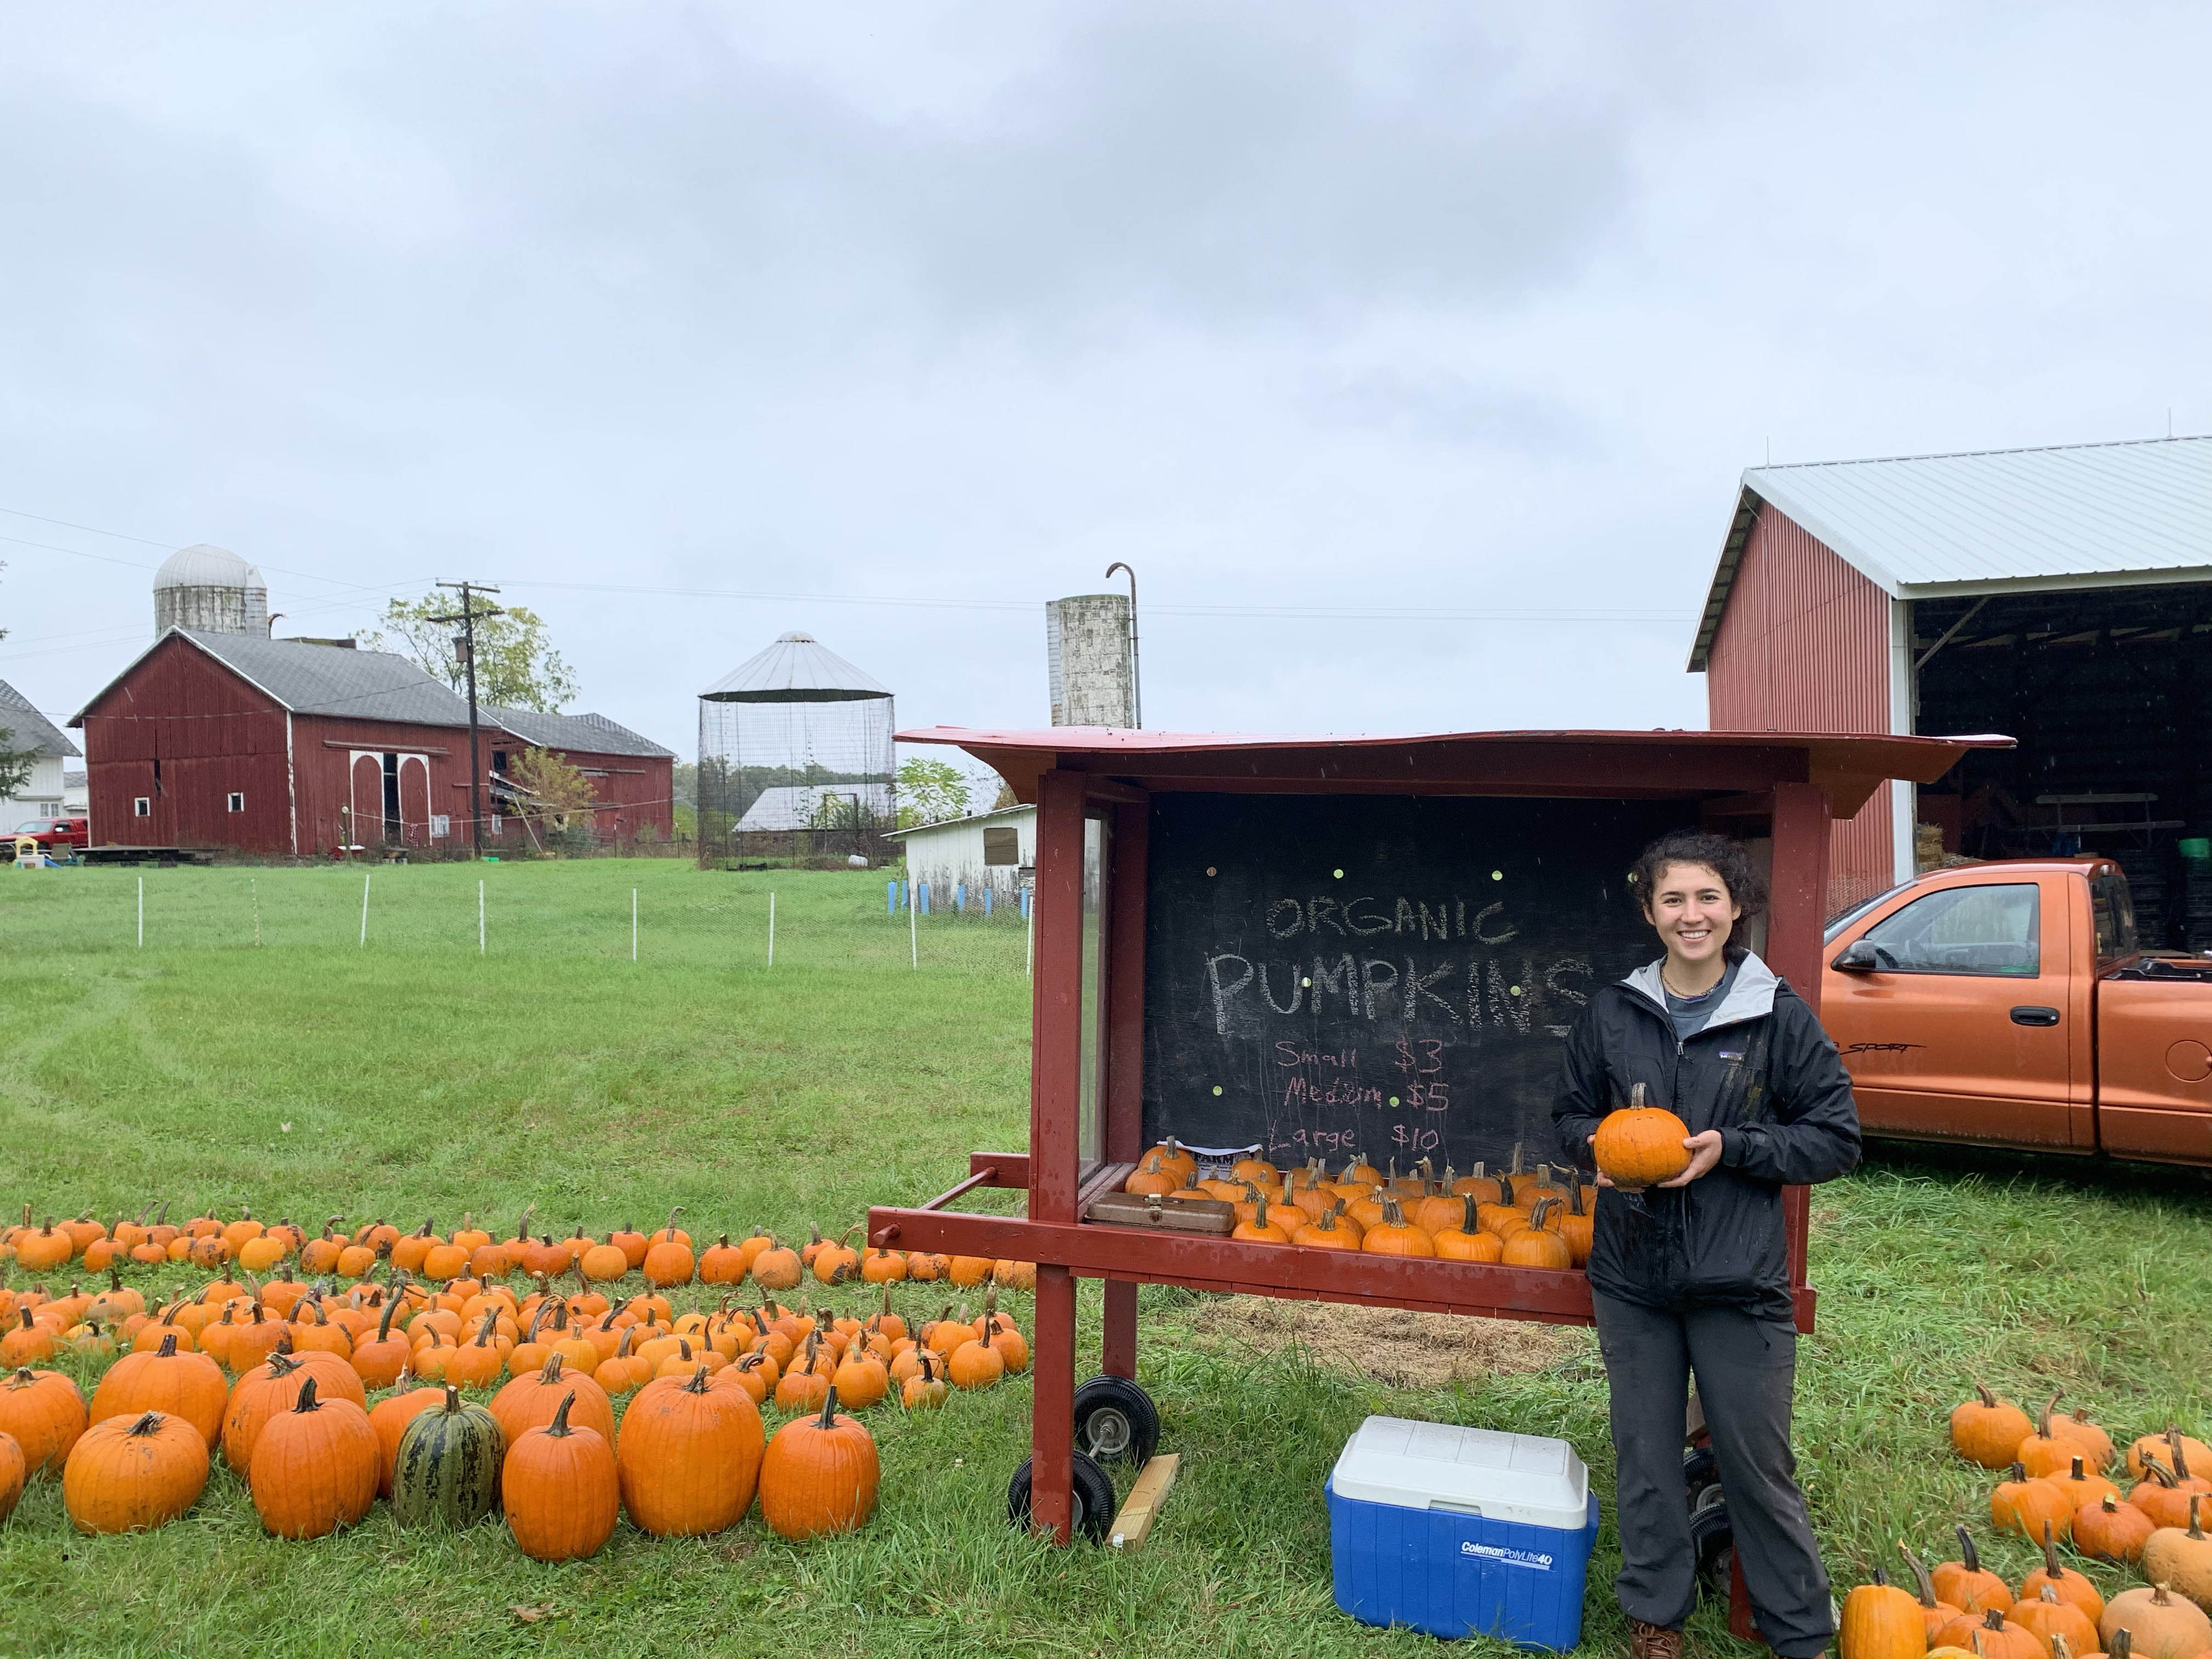 Last summer, Schmitter worked at Brines Farm in Webster Township near Dexter, Michigan. The farm is organically certified and grows food commercially year-round by using hoop houses and other sustainable techniques. Schmitter is pictured here with some of the pumpkin harvest.